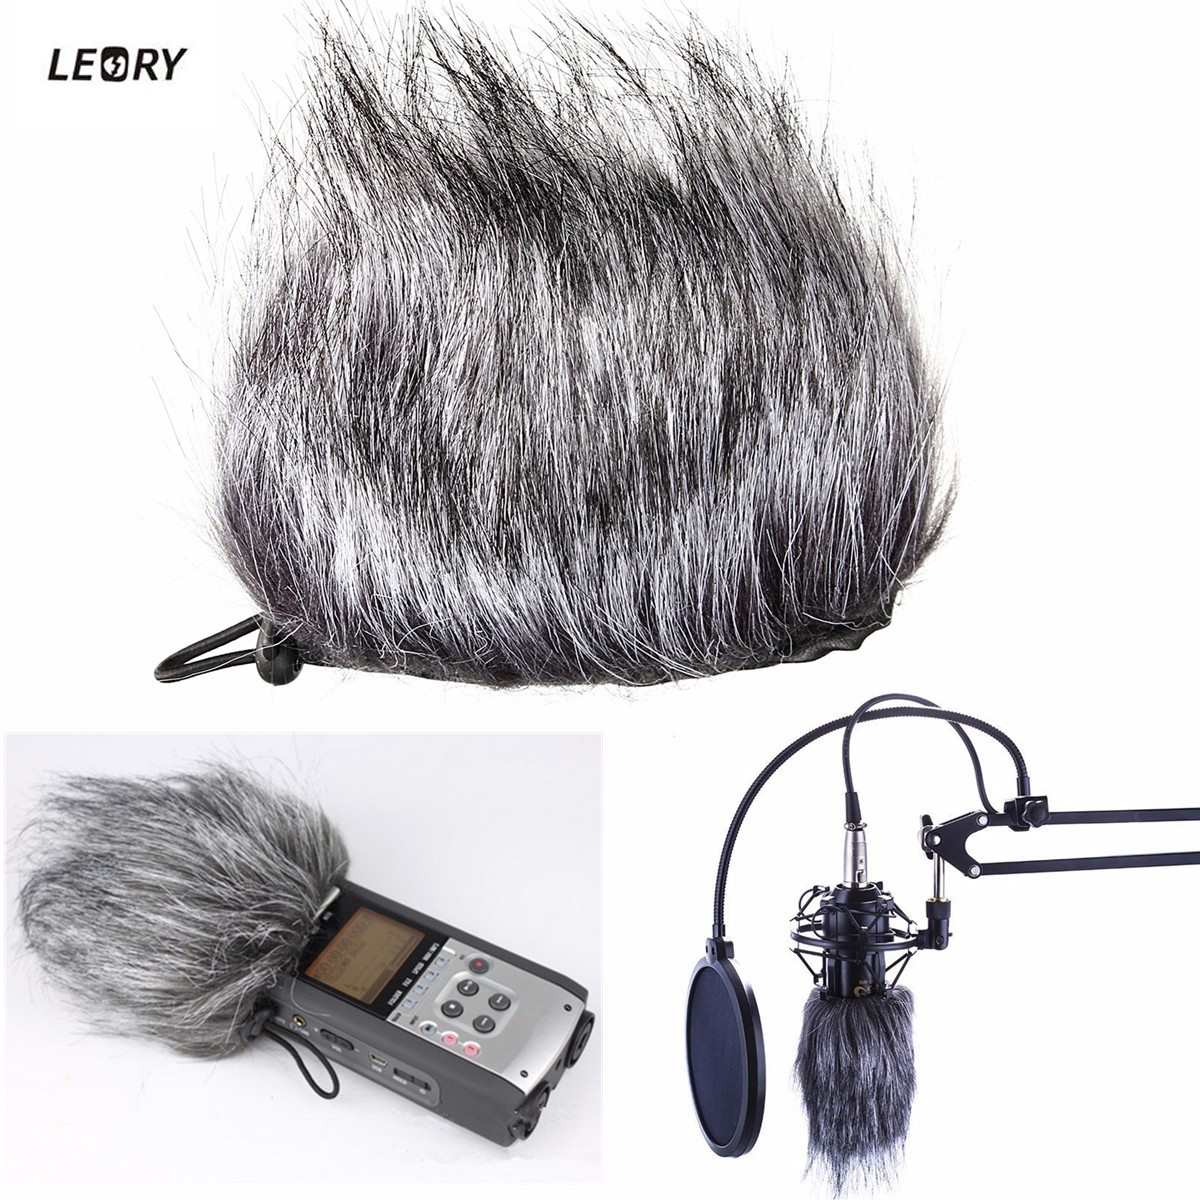 LEORY Artificial Fur Microphone Muff Windscreen Wind Sleeve Shield Cover For Zoom H1 H2N H4N Q3 For Sony D50 Recorder 120x130mm